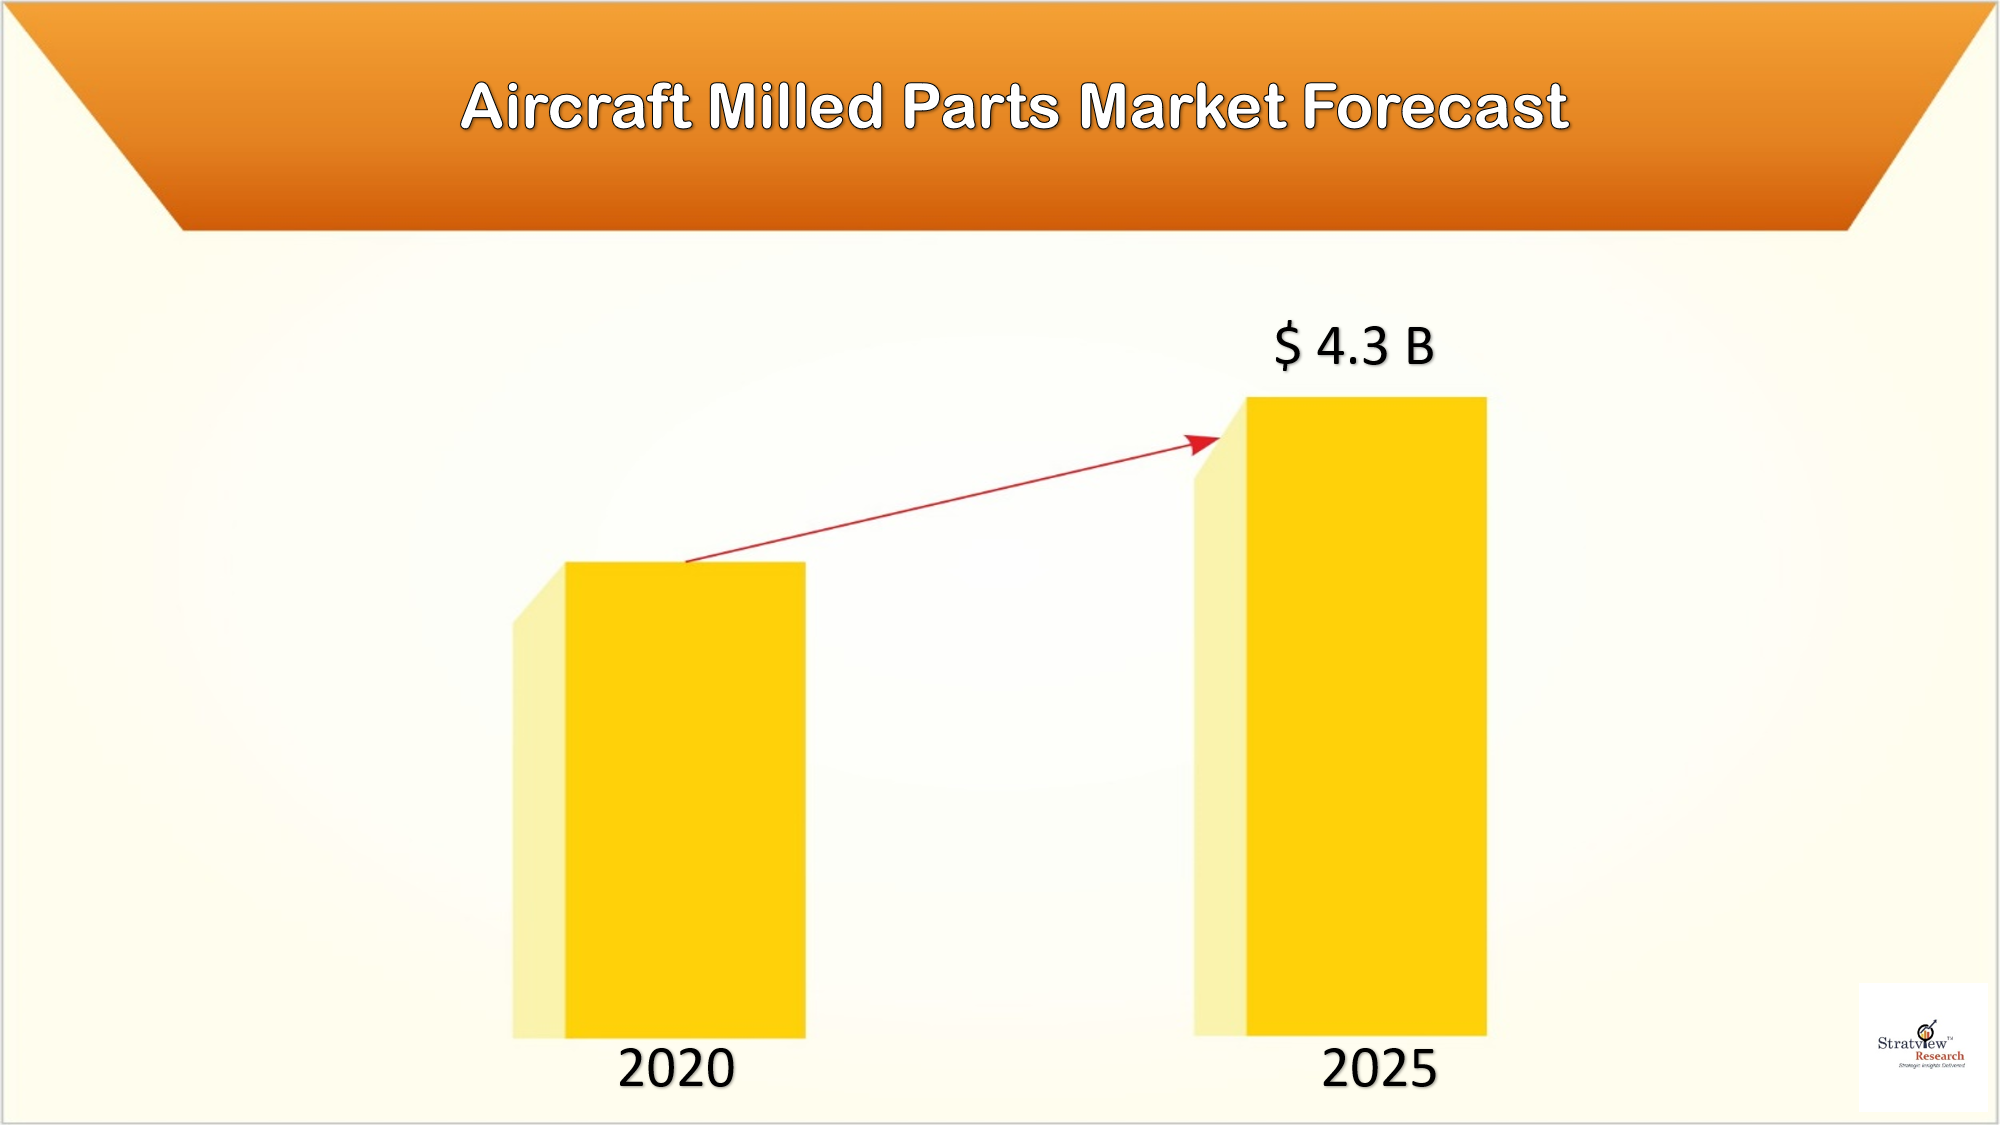 Impact of COVID-19 Outbreak on the Aircraft Milled Parts Market